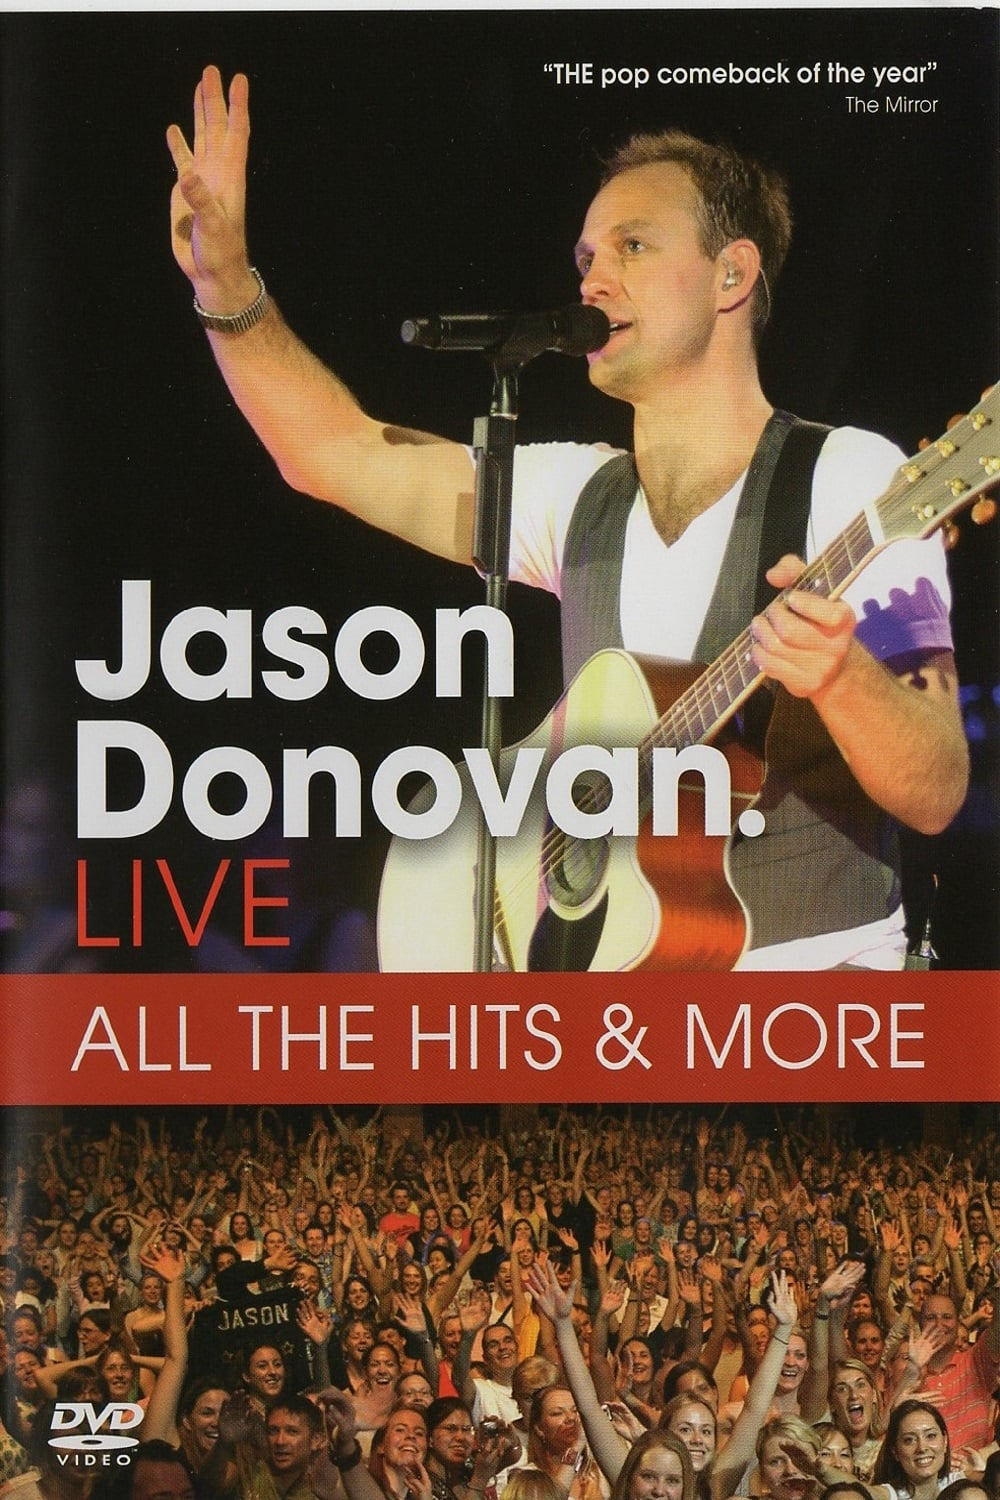 Jason Donovan: Live All The Hits and More (2007)